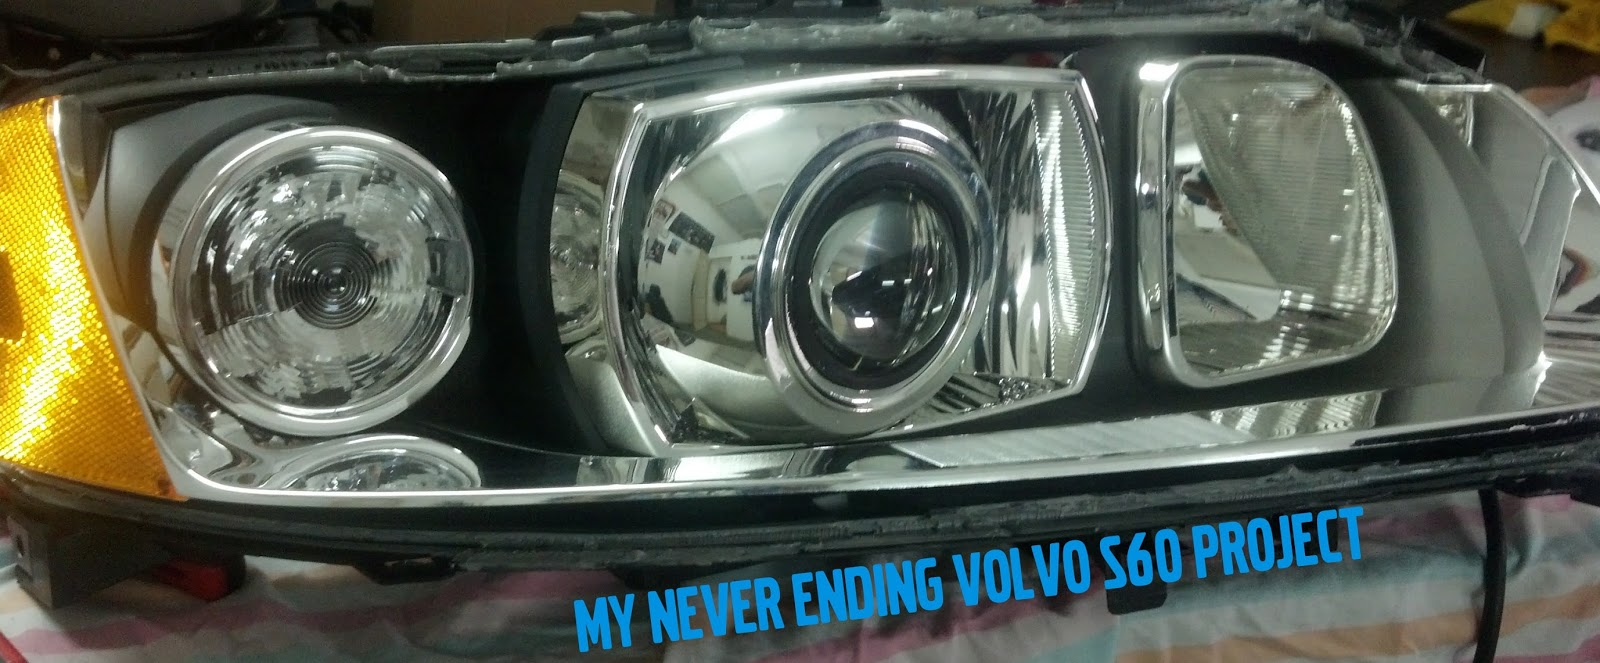 My Never Ending Volvo S60 Project: Behind blue eyes on